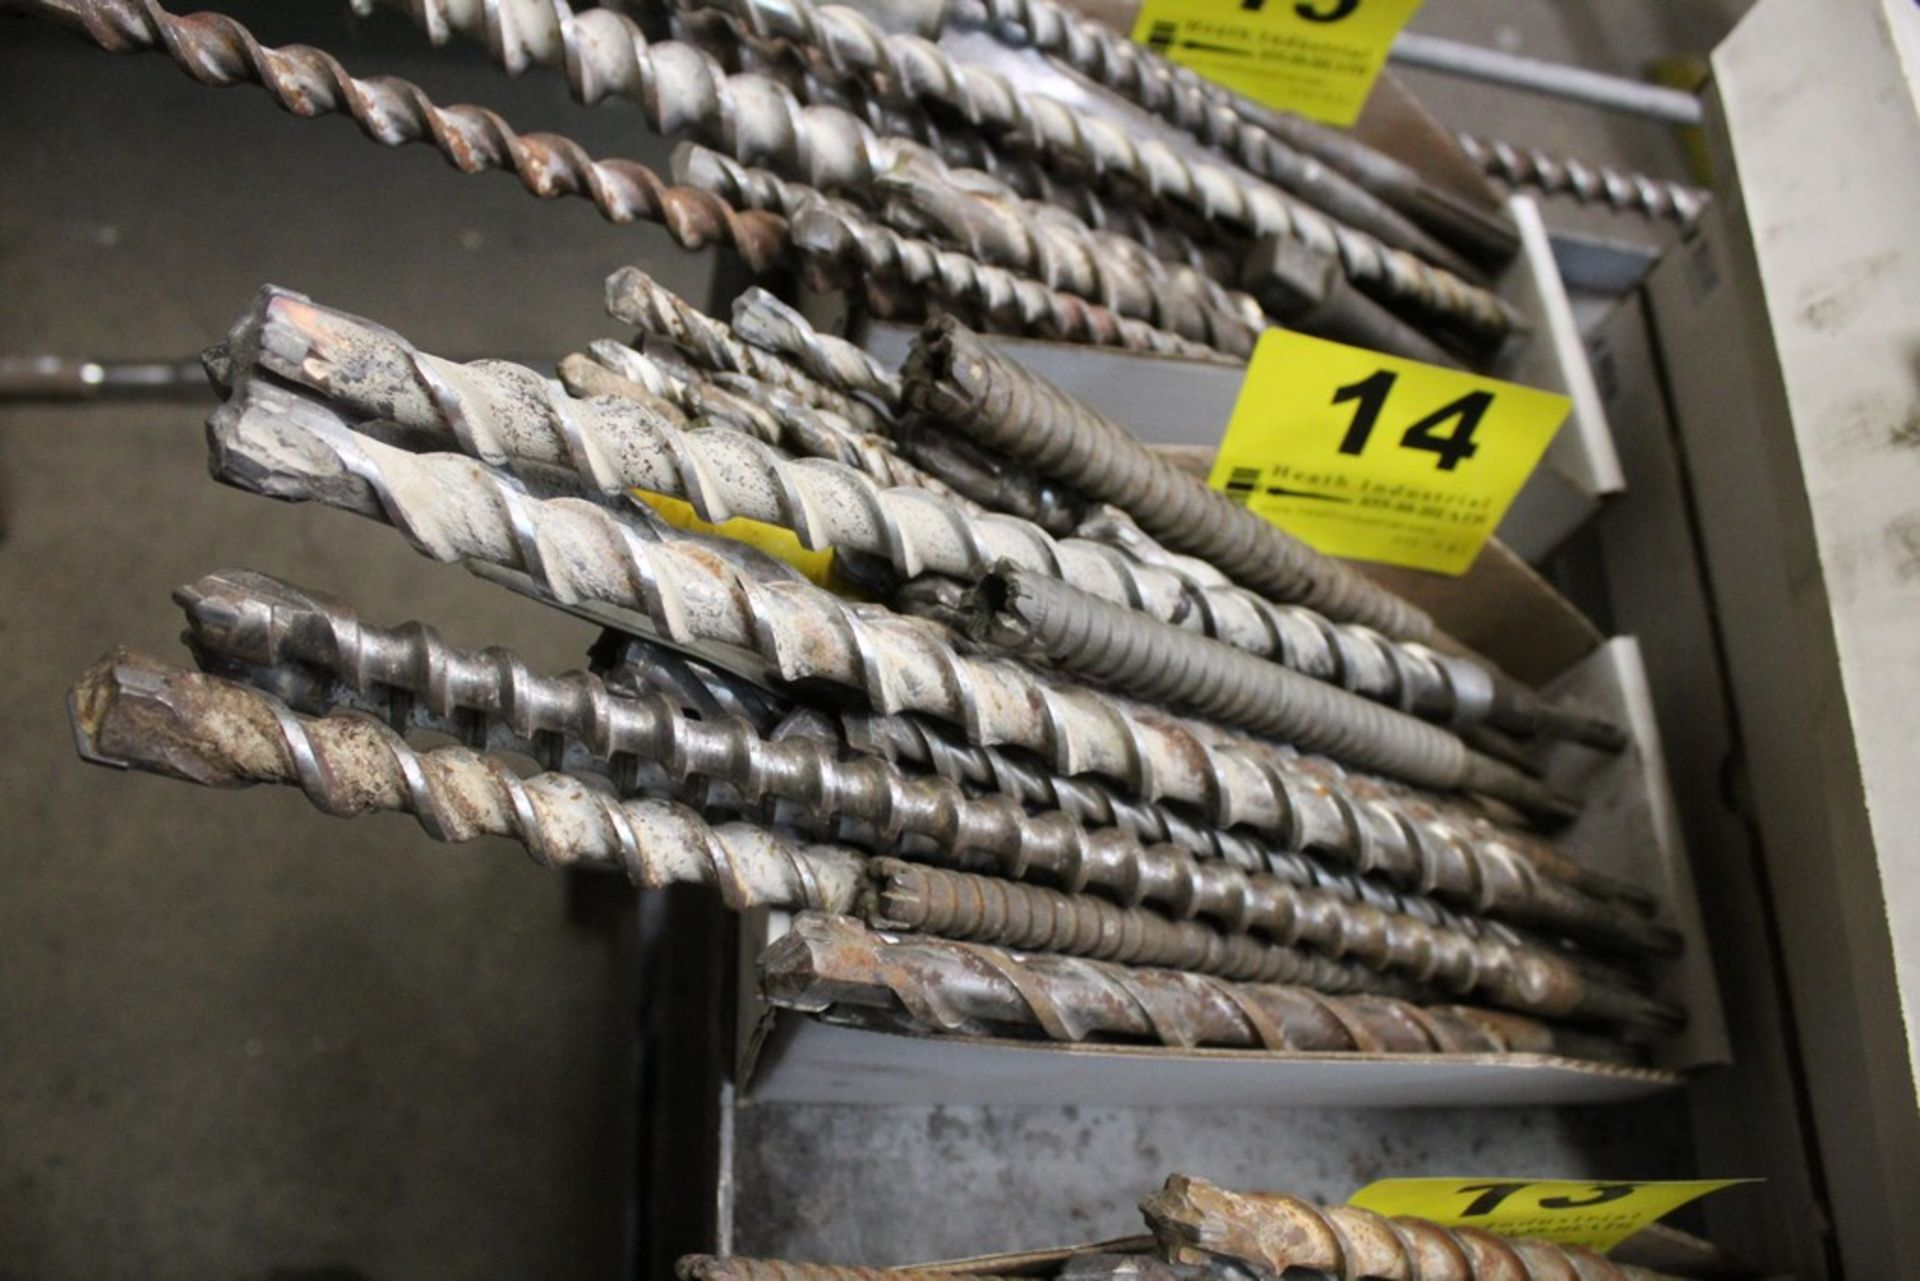 Lot 14 - ASSORTED ROTARY HAMMER BITS